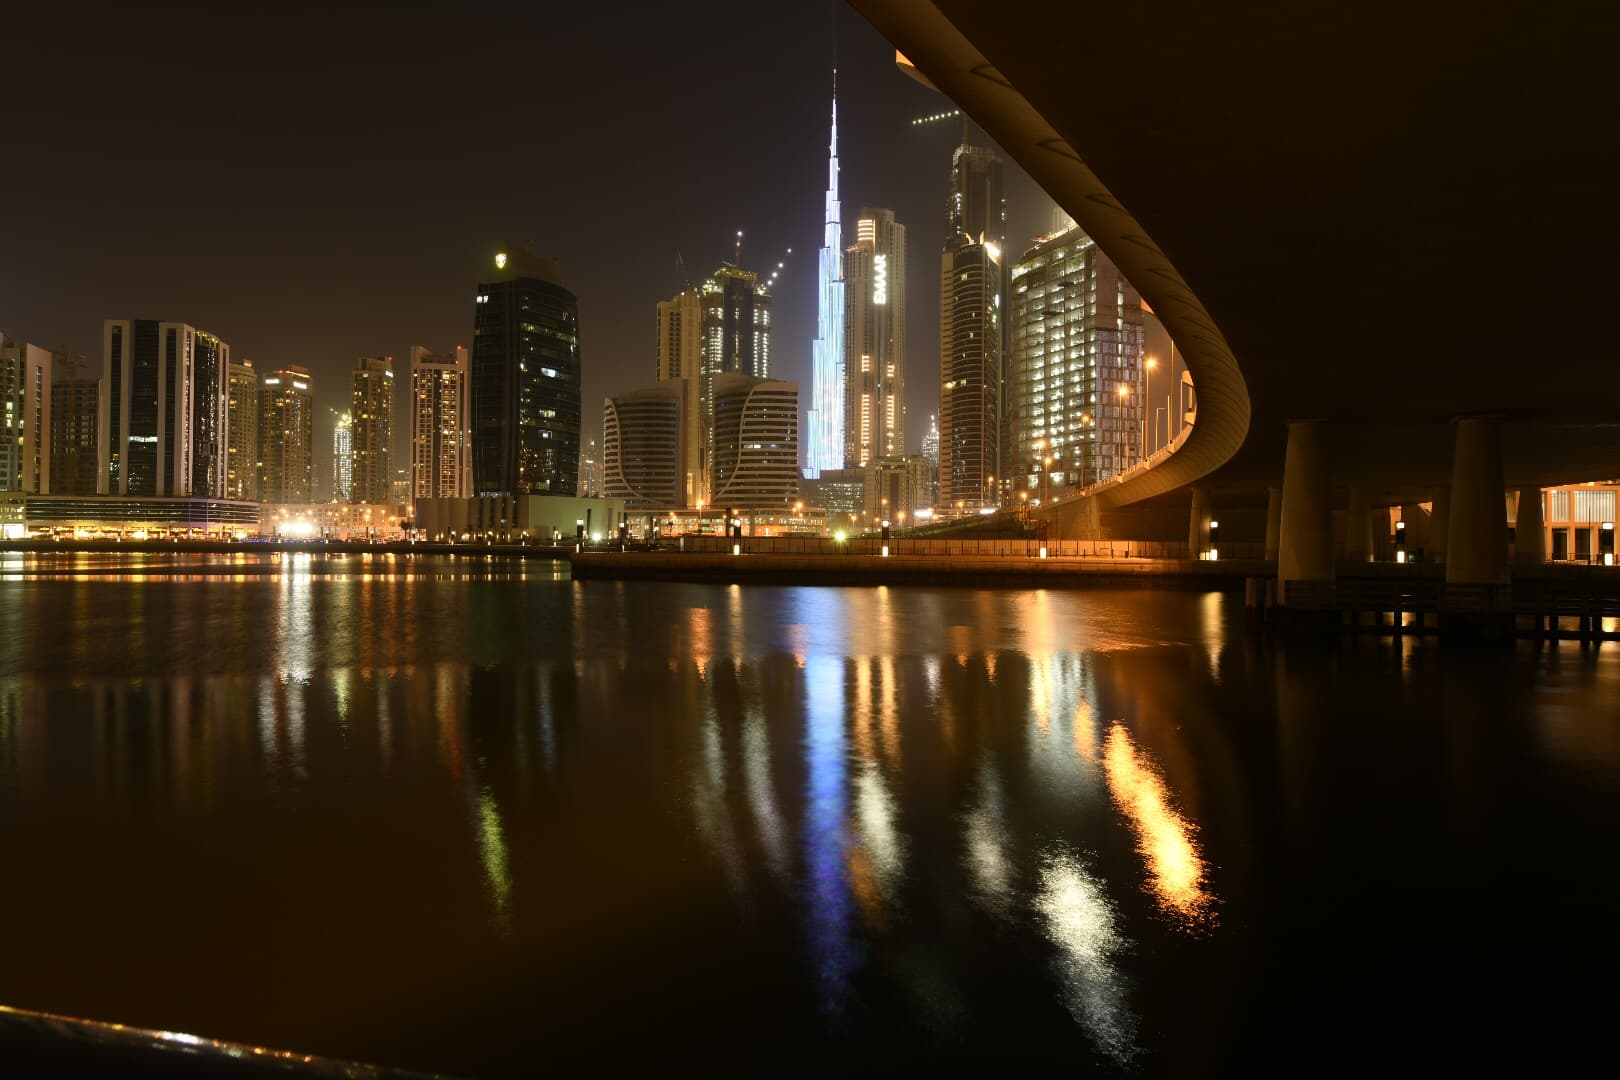 view of Dubai from under a bridge